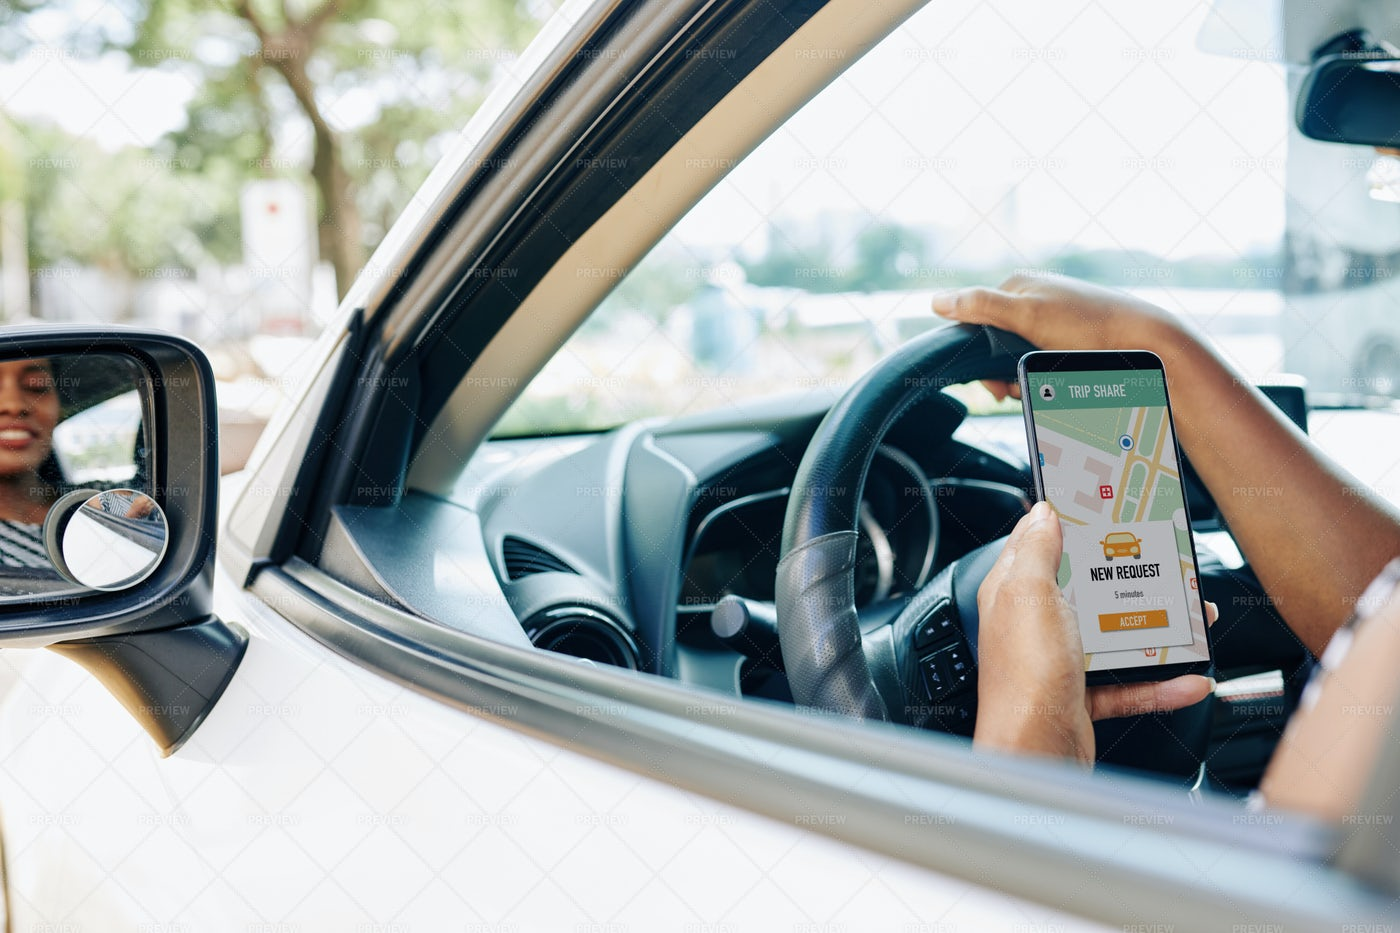 Car Sharing In The City: Stock Photos